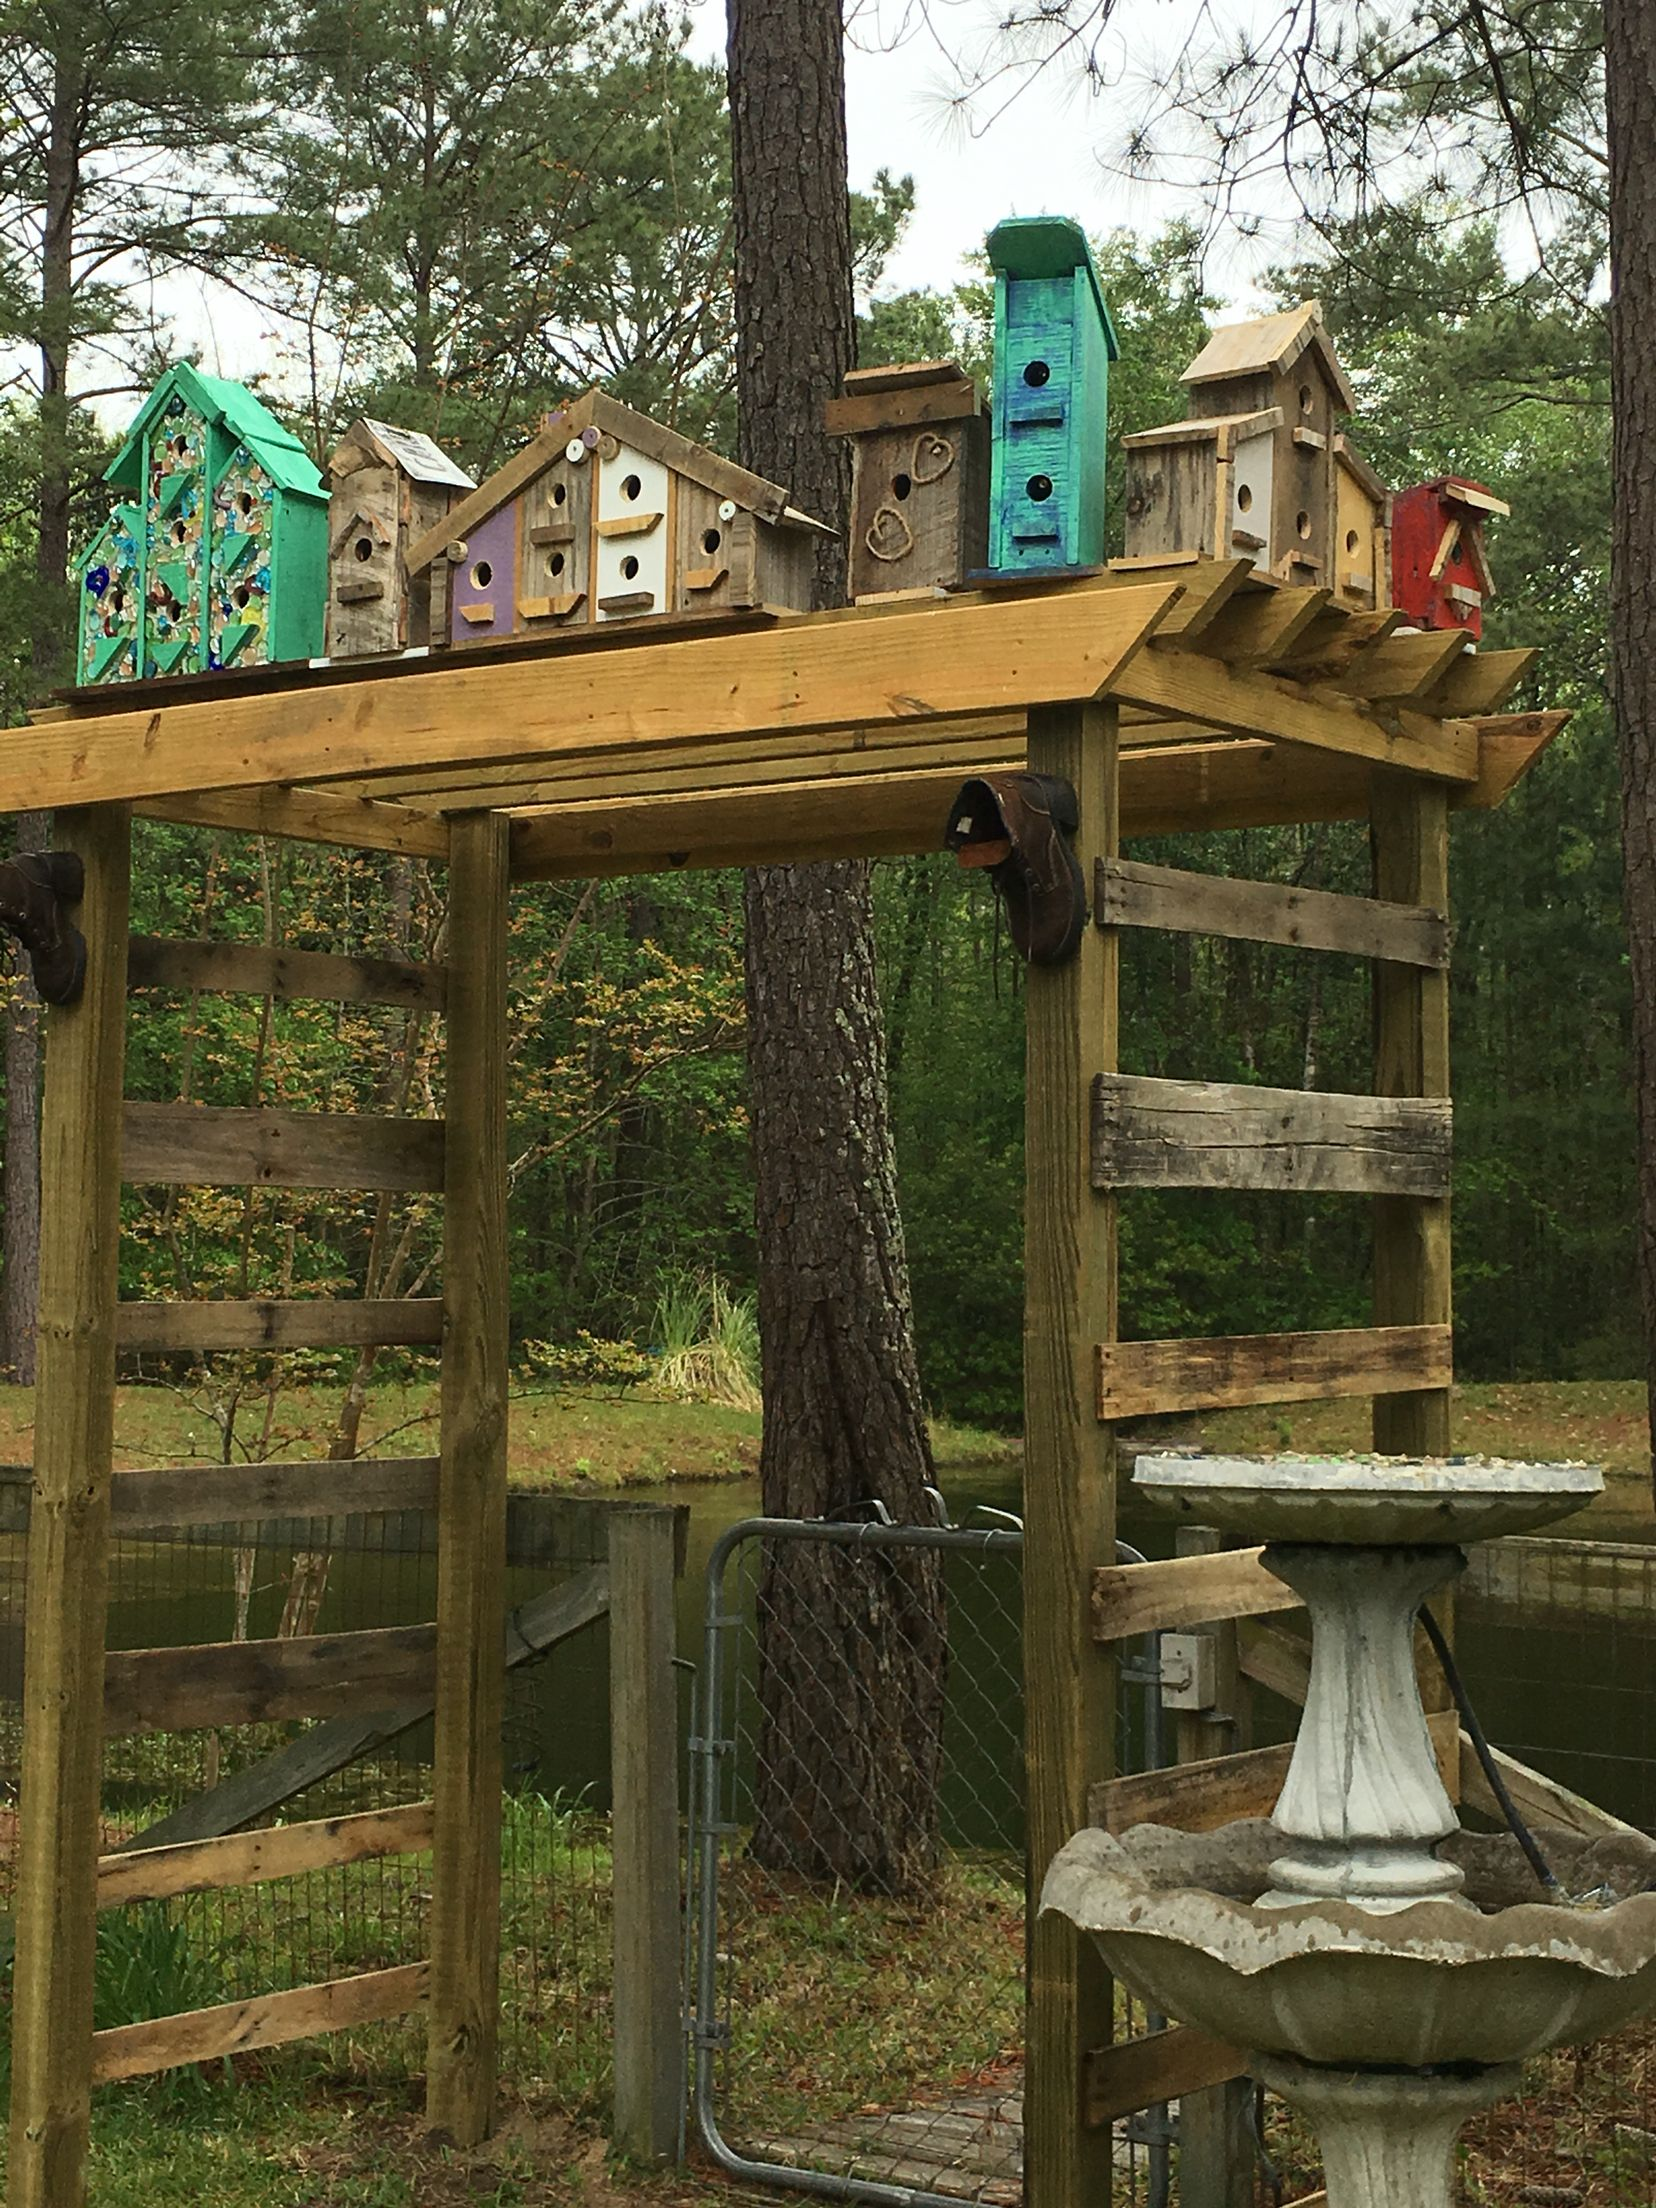 Birdhouse arbor made from scrap wood and pallet boards and scrap lumber to make the birdhouses. Looks over the catfish pond in our backyard